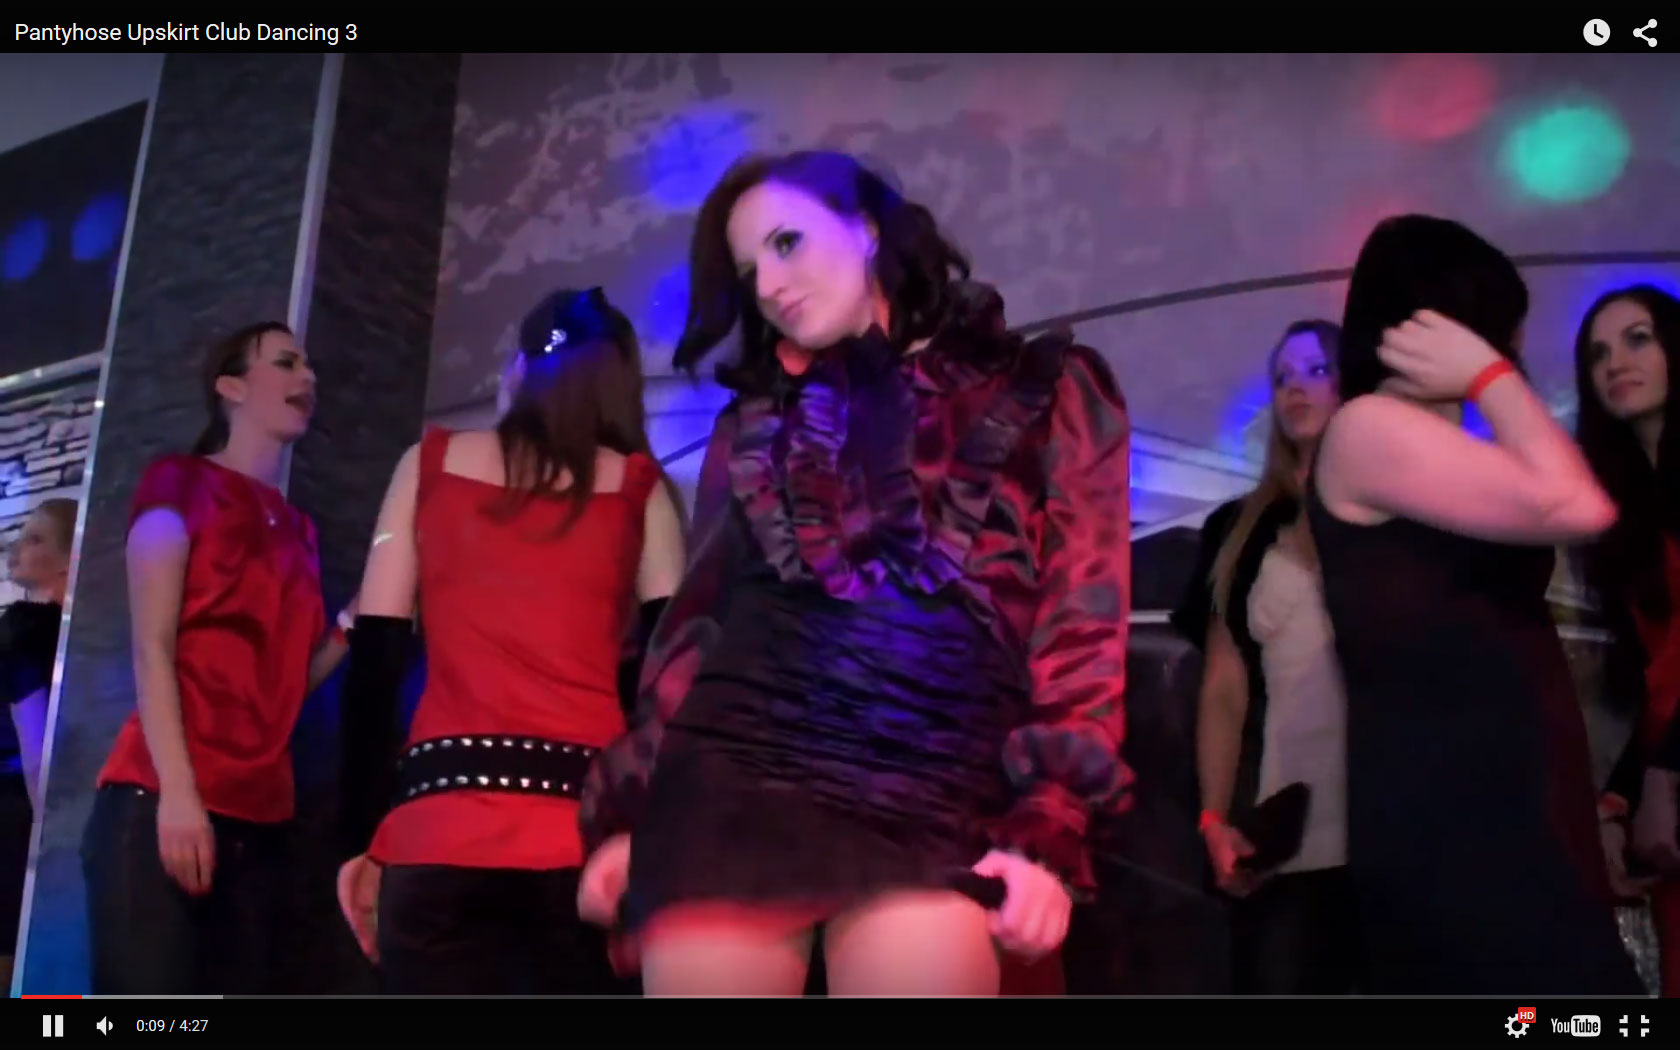 Dancing Pantyhose Upskirt in a Club | Daily Girls @ Female Update